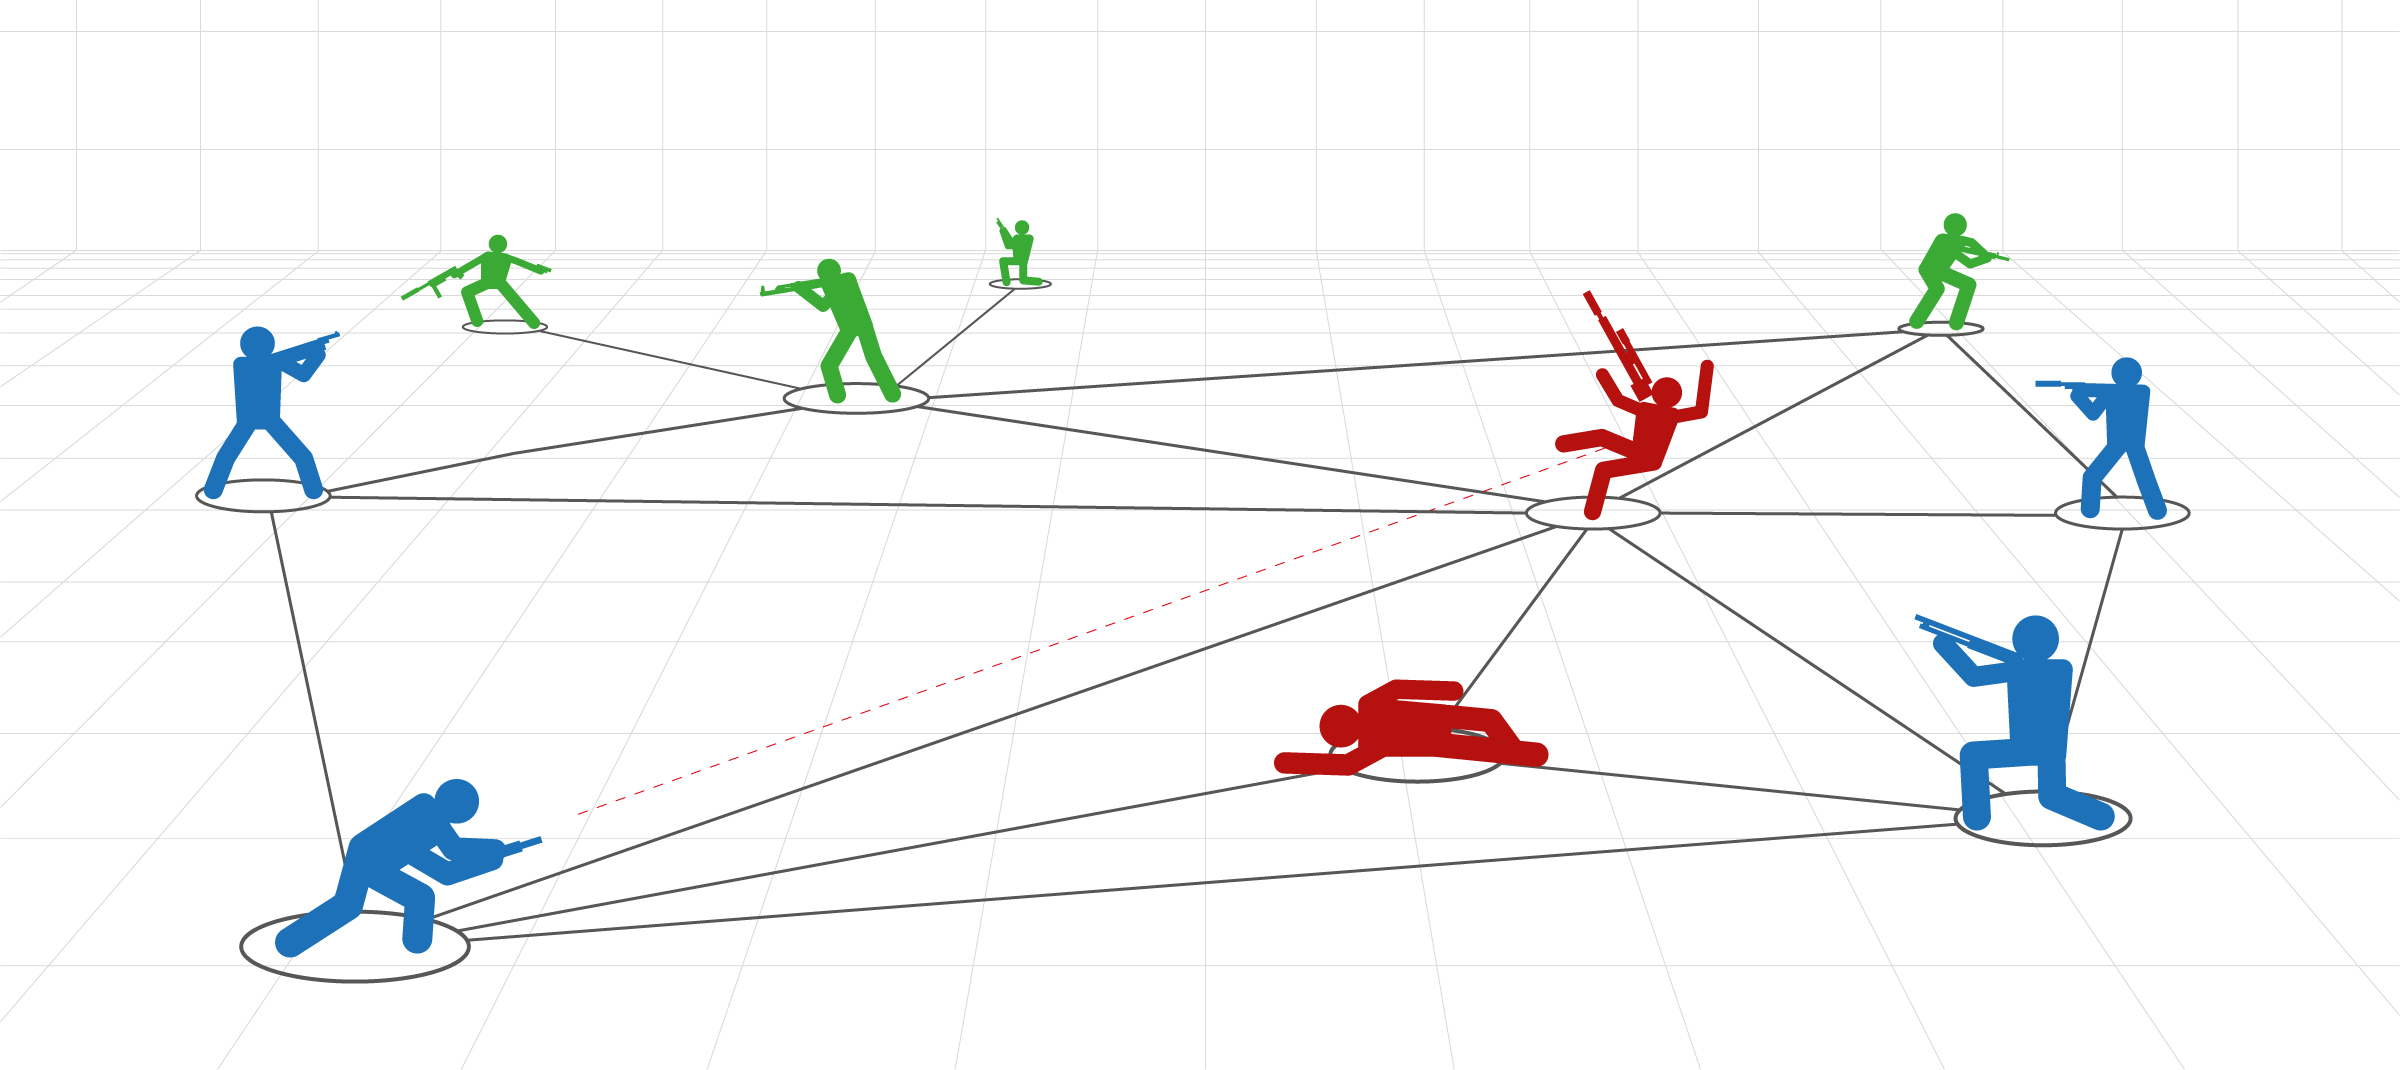 As we wrote the network code of the mobile PvP shooter: synchronization of the player on the client